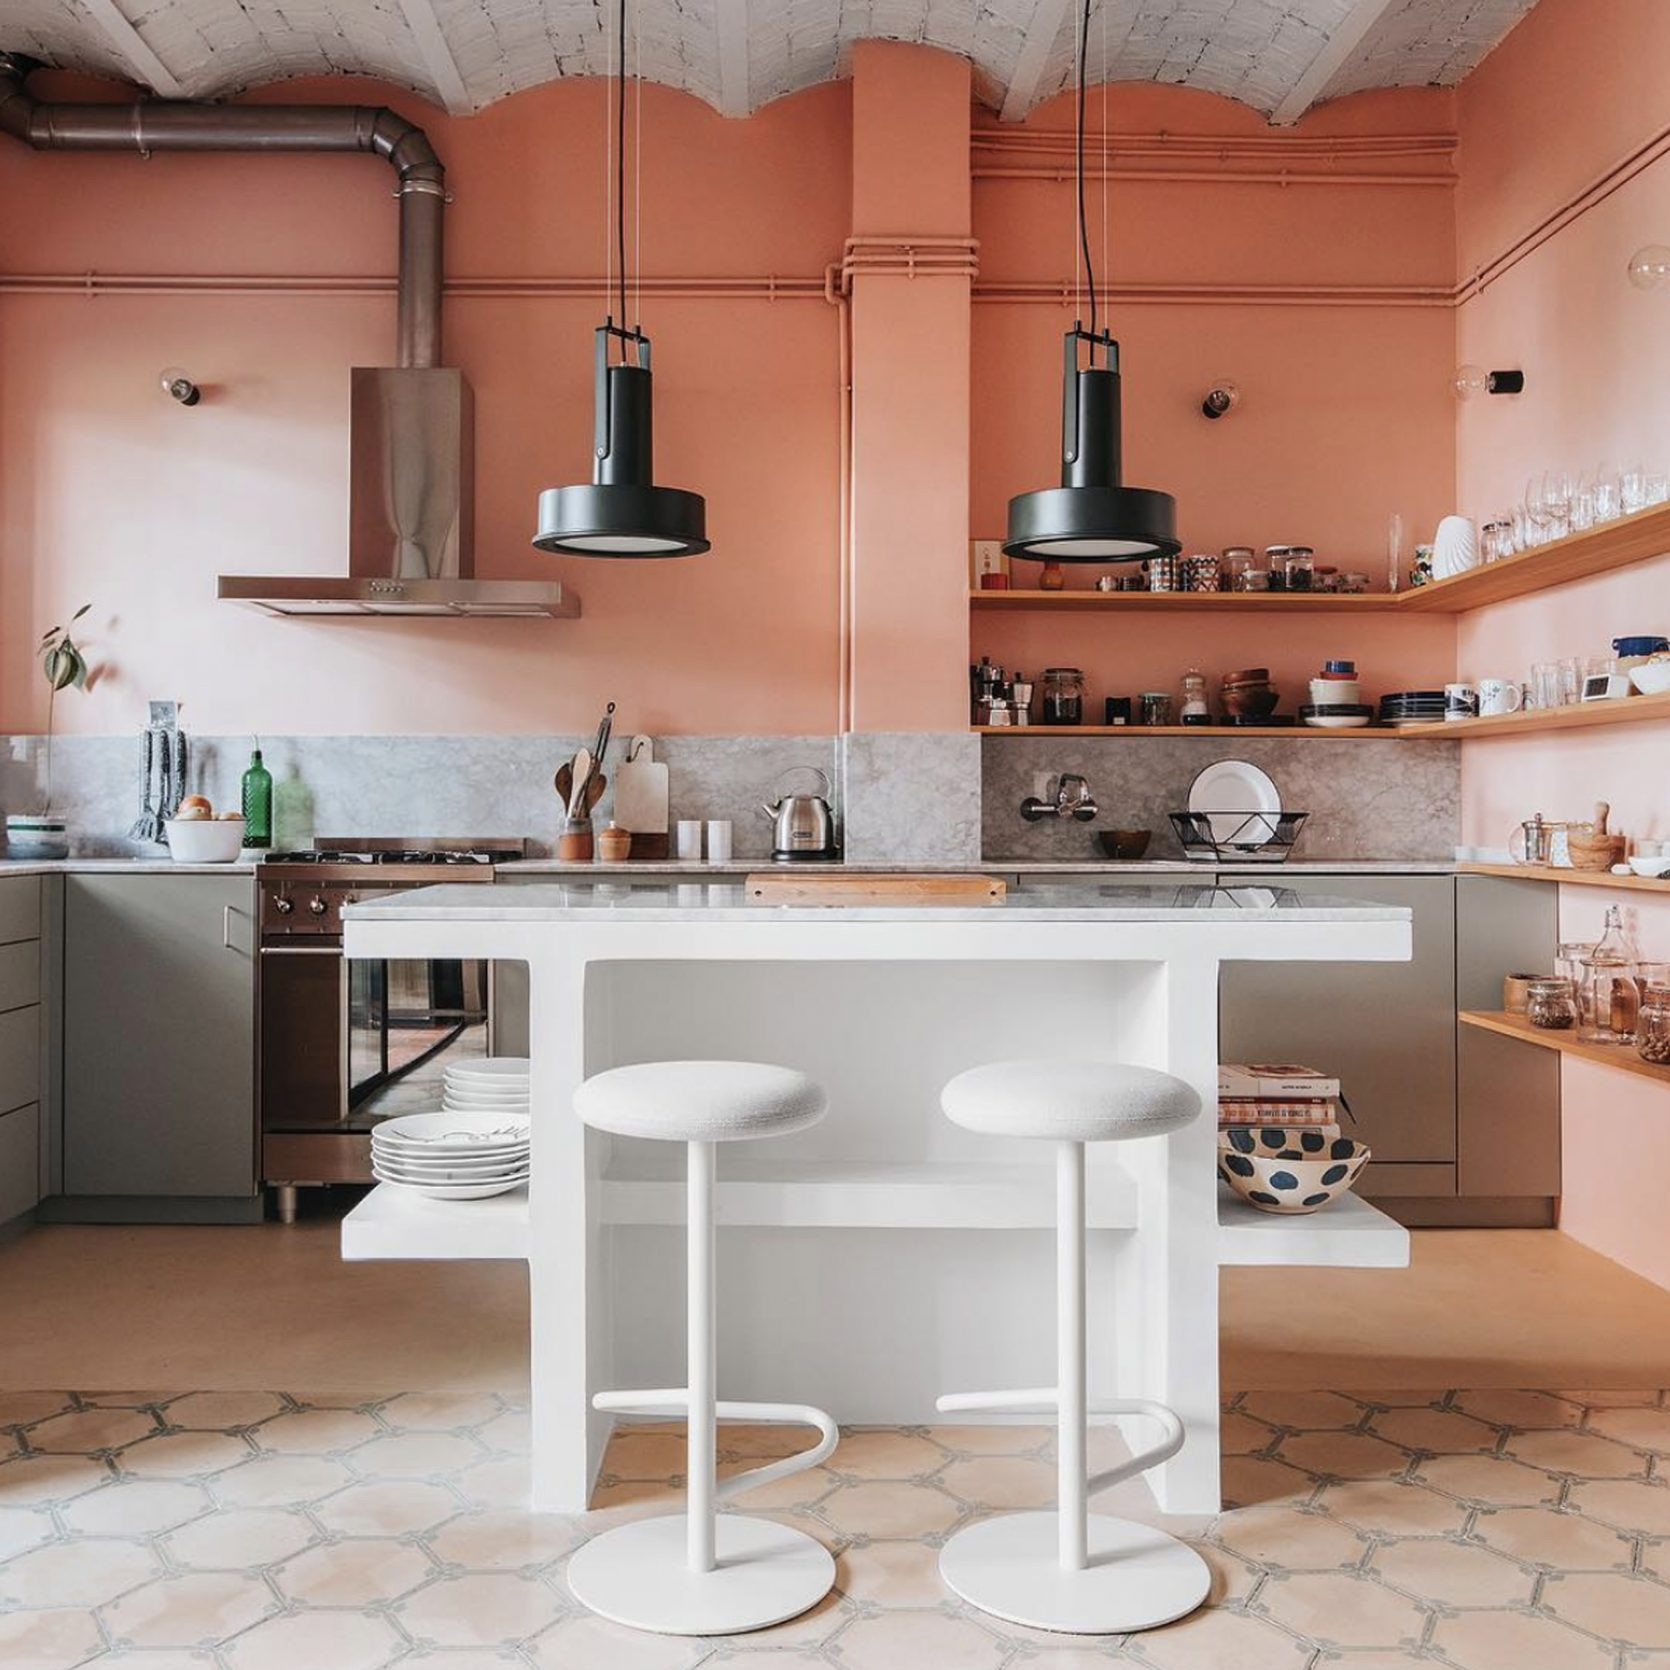 Best ideas about Paint Colors 2019 . Save or Pin 2019 Paint Color Trends Emily Henderson Now.